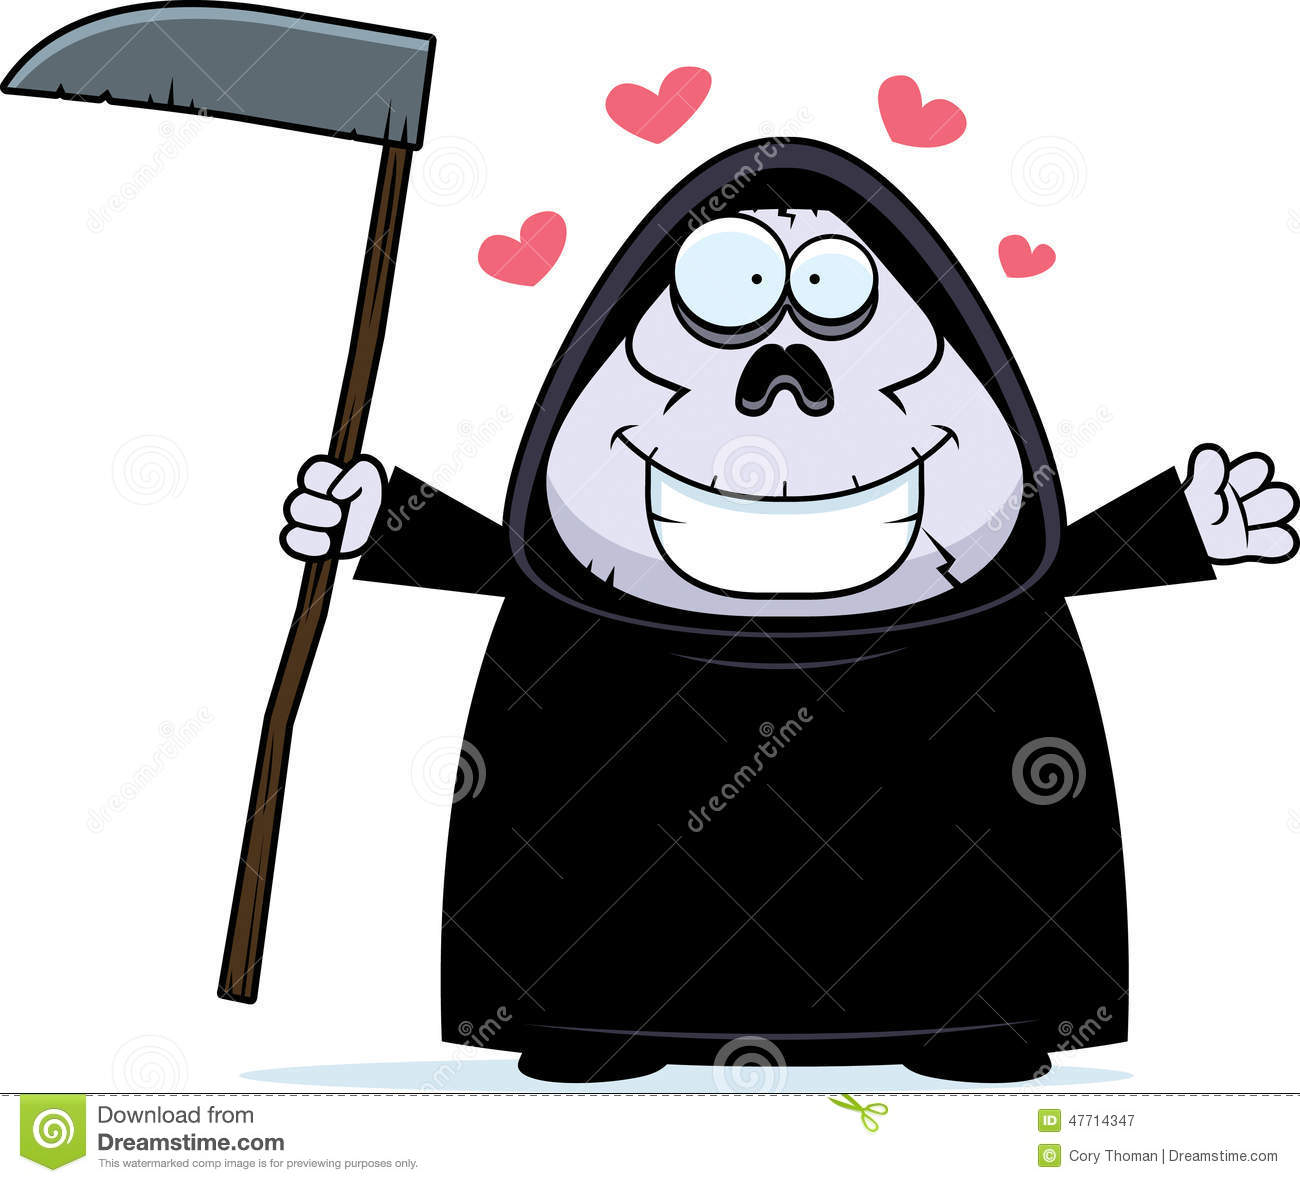 Image result for a cartoon picture of the grim reaper